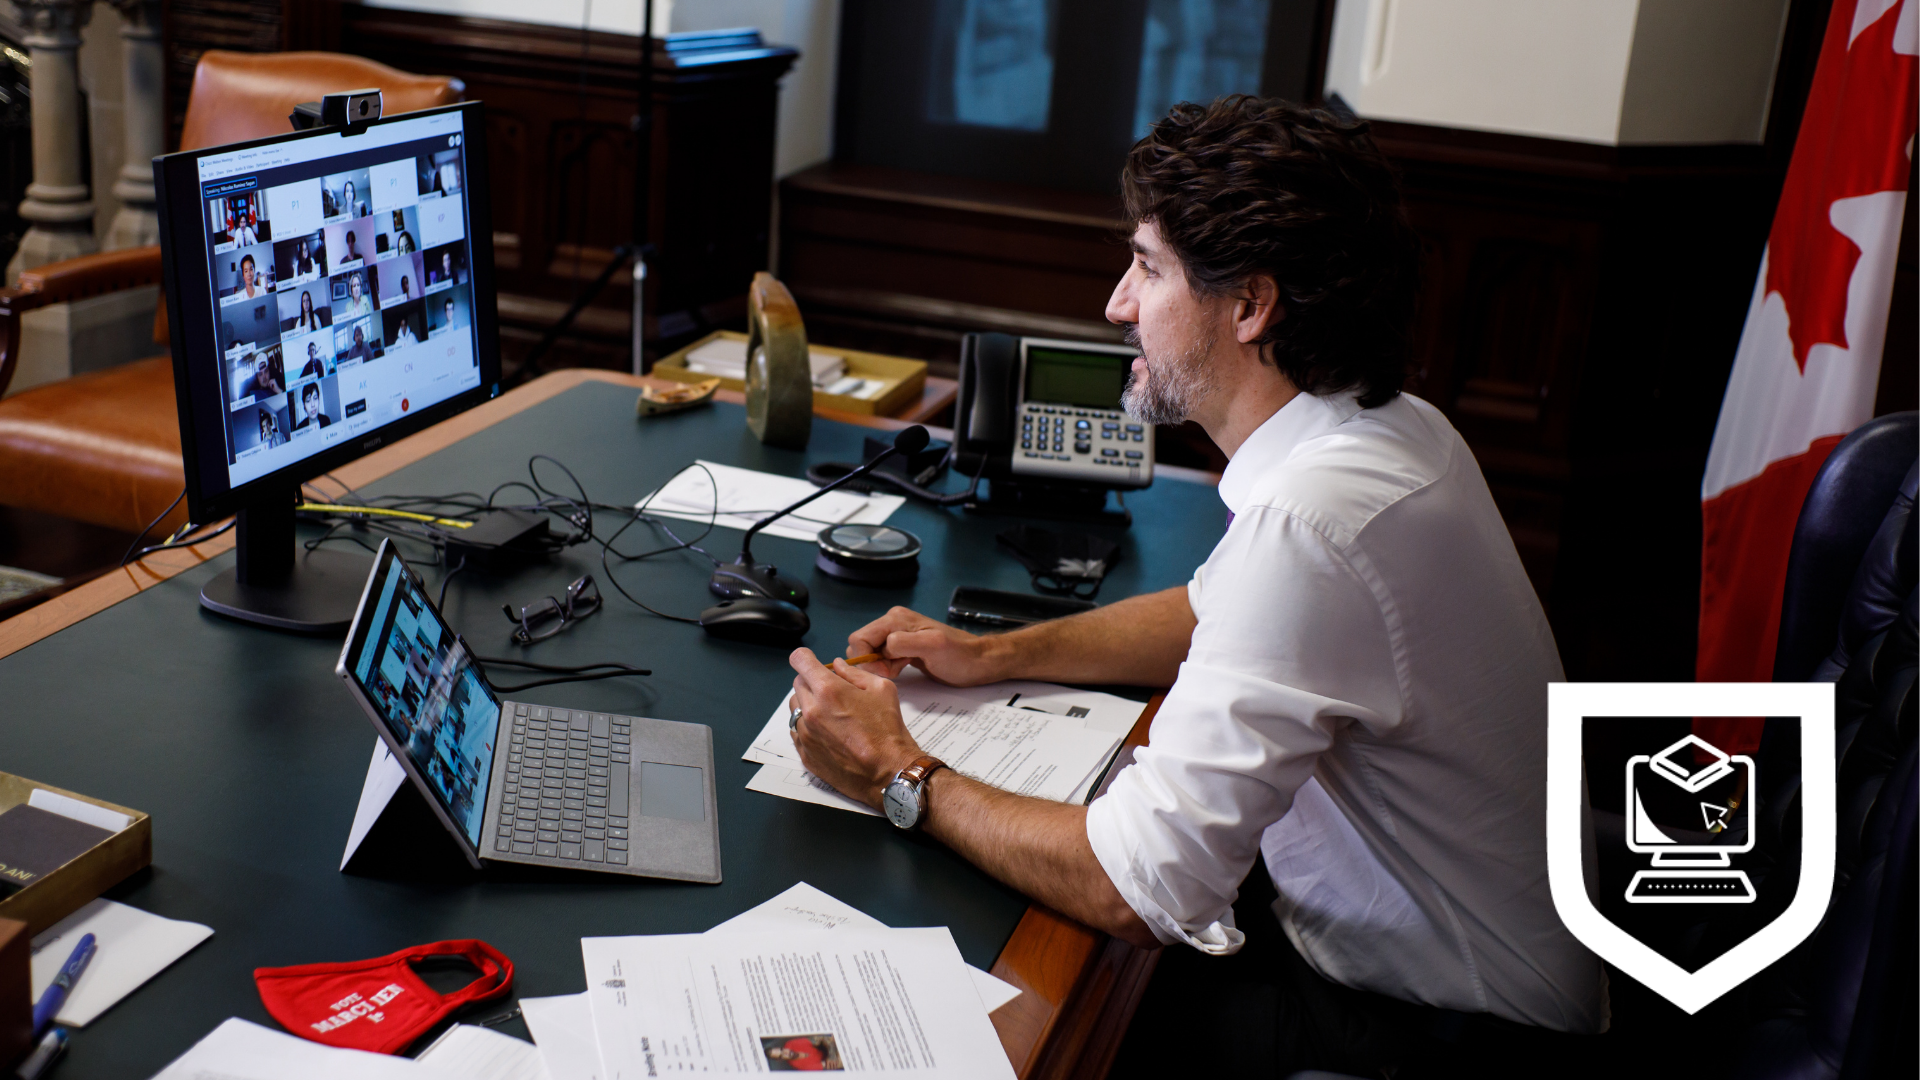 Prime Minister Trudeau chatting with students virtually on his laptop